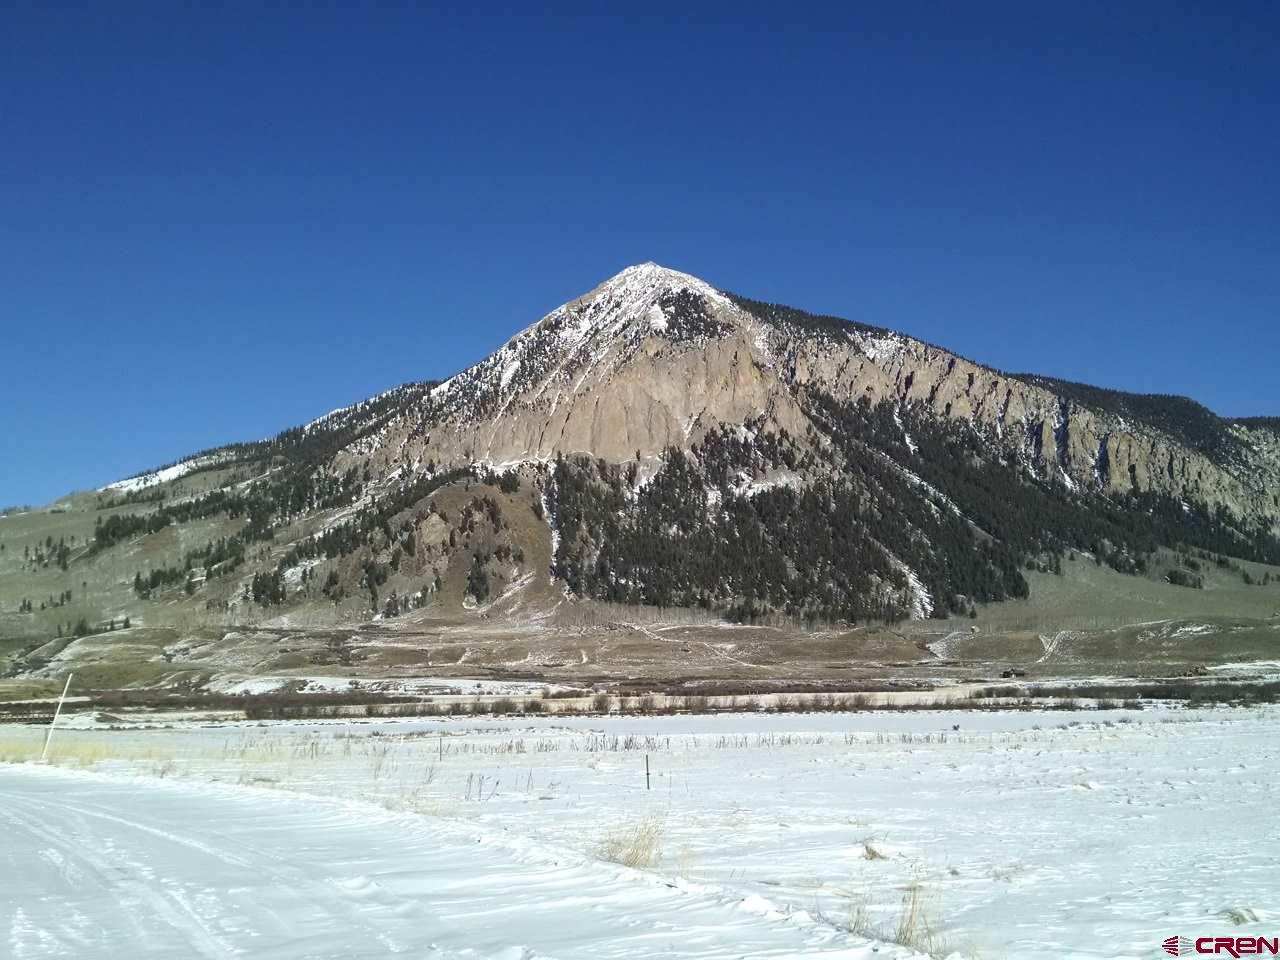 MLS# 757733 - 9 - 341 Mccormick Ranch Road, Crested Butte, CO 81224